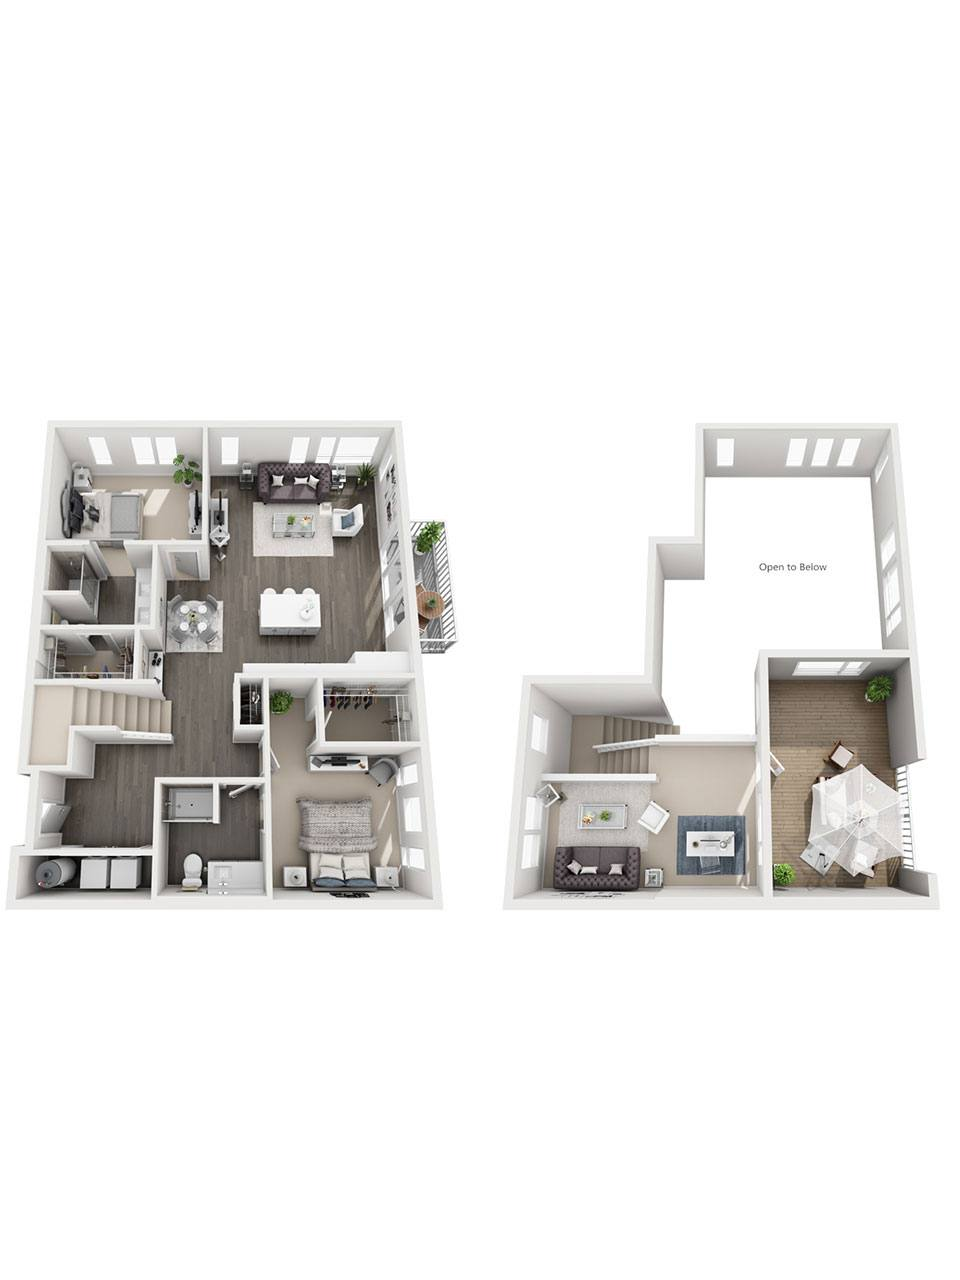 Plan 2 Bedroom – C1-L | 2 Bath